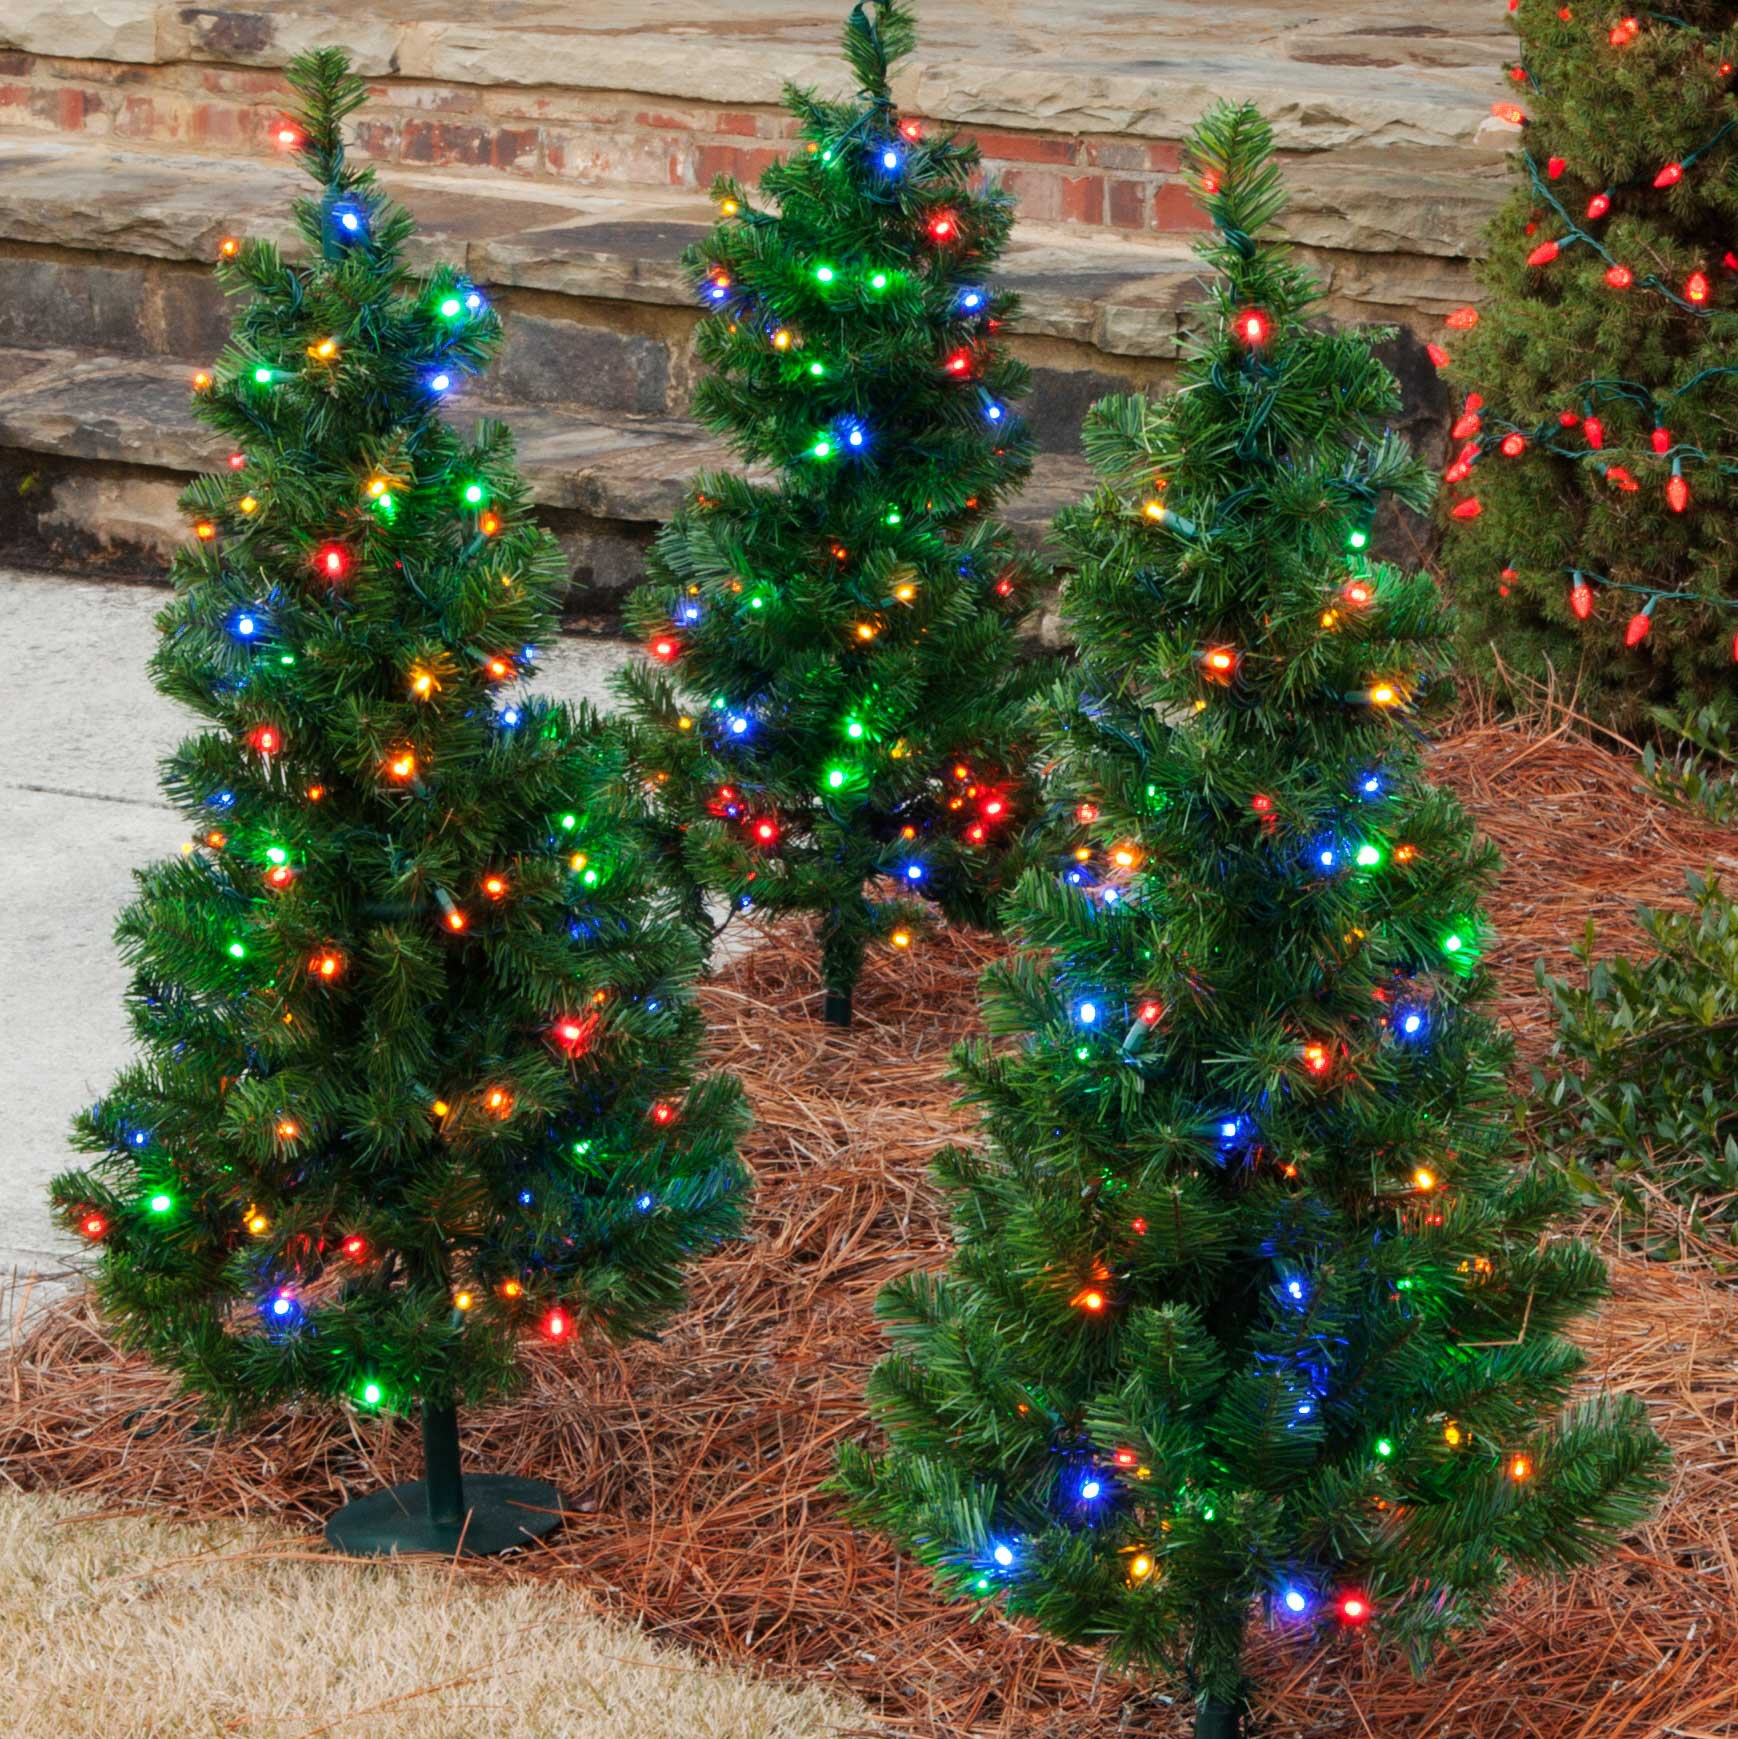 outdoor decorations 3u0027 walkway prelit winchester fir tree 100 led lamps - Prelit Christmas Tree